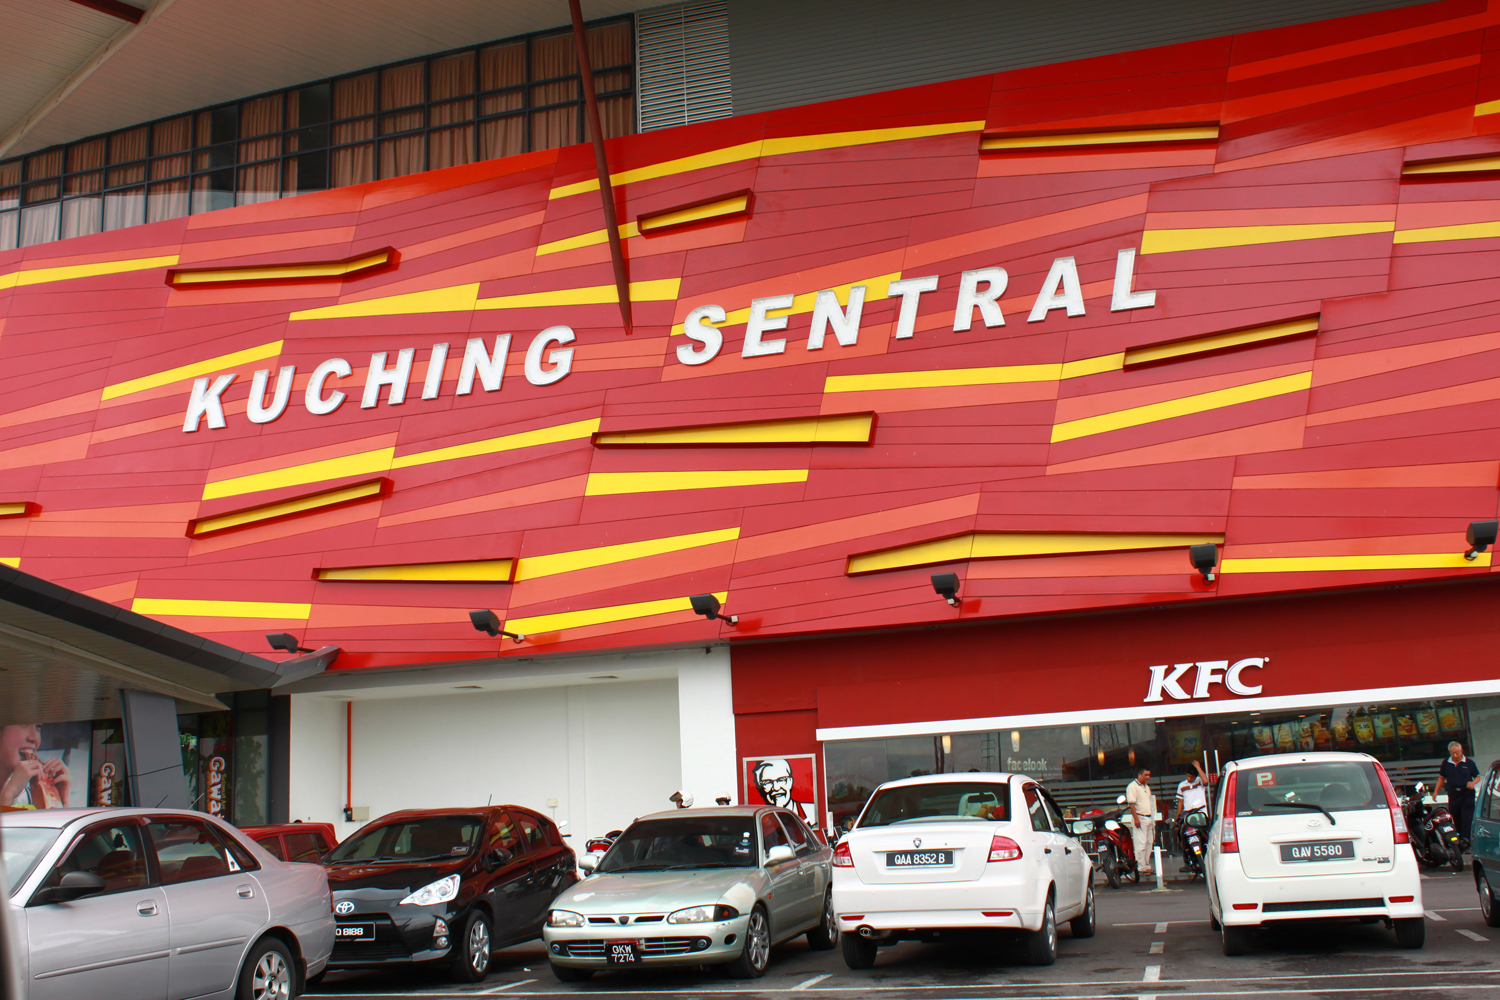 kuching bus terminal in east malaysia 50 things to do in sarawak that prove east malaysia is the greatest undiscovered region in the world  batang lupar waterfront in sri aman, a 3-hour drive away from kuching buses to sri aman are also available from the kuching bus terminal park yourself at the taman panorama benak observation point (an award winning piece of architectecture.